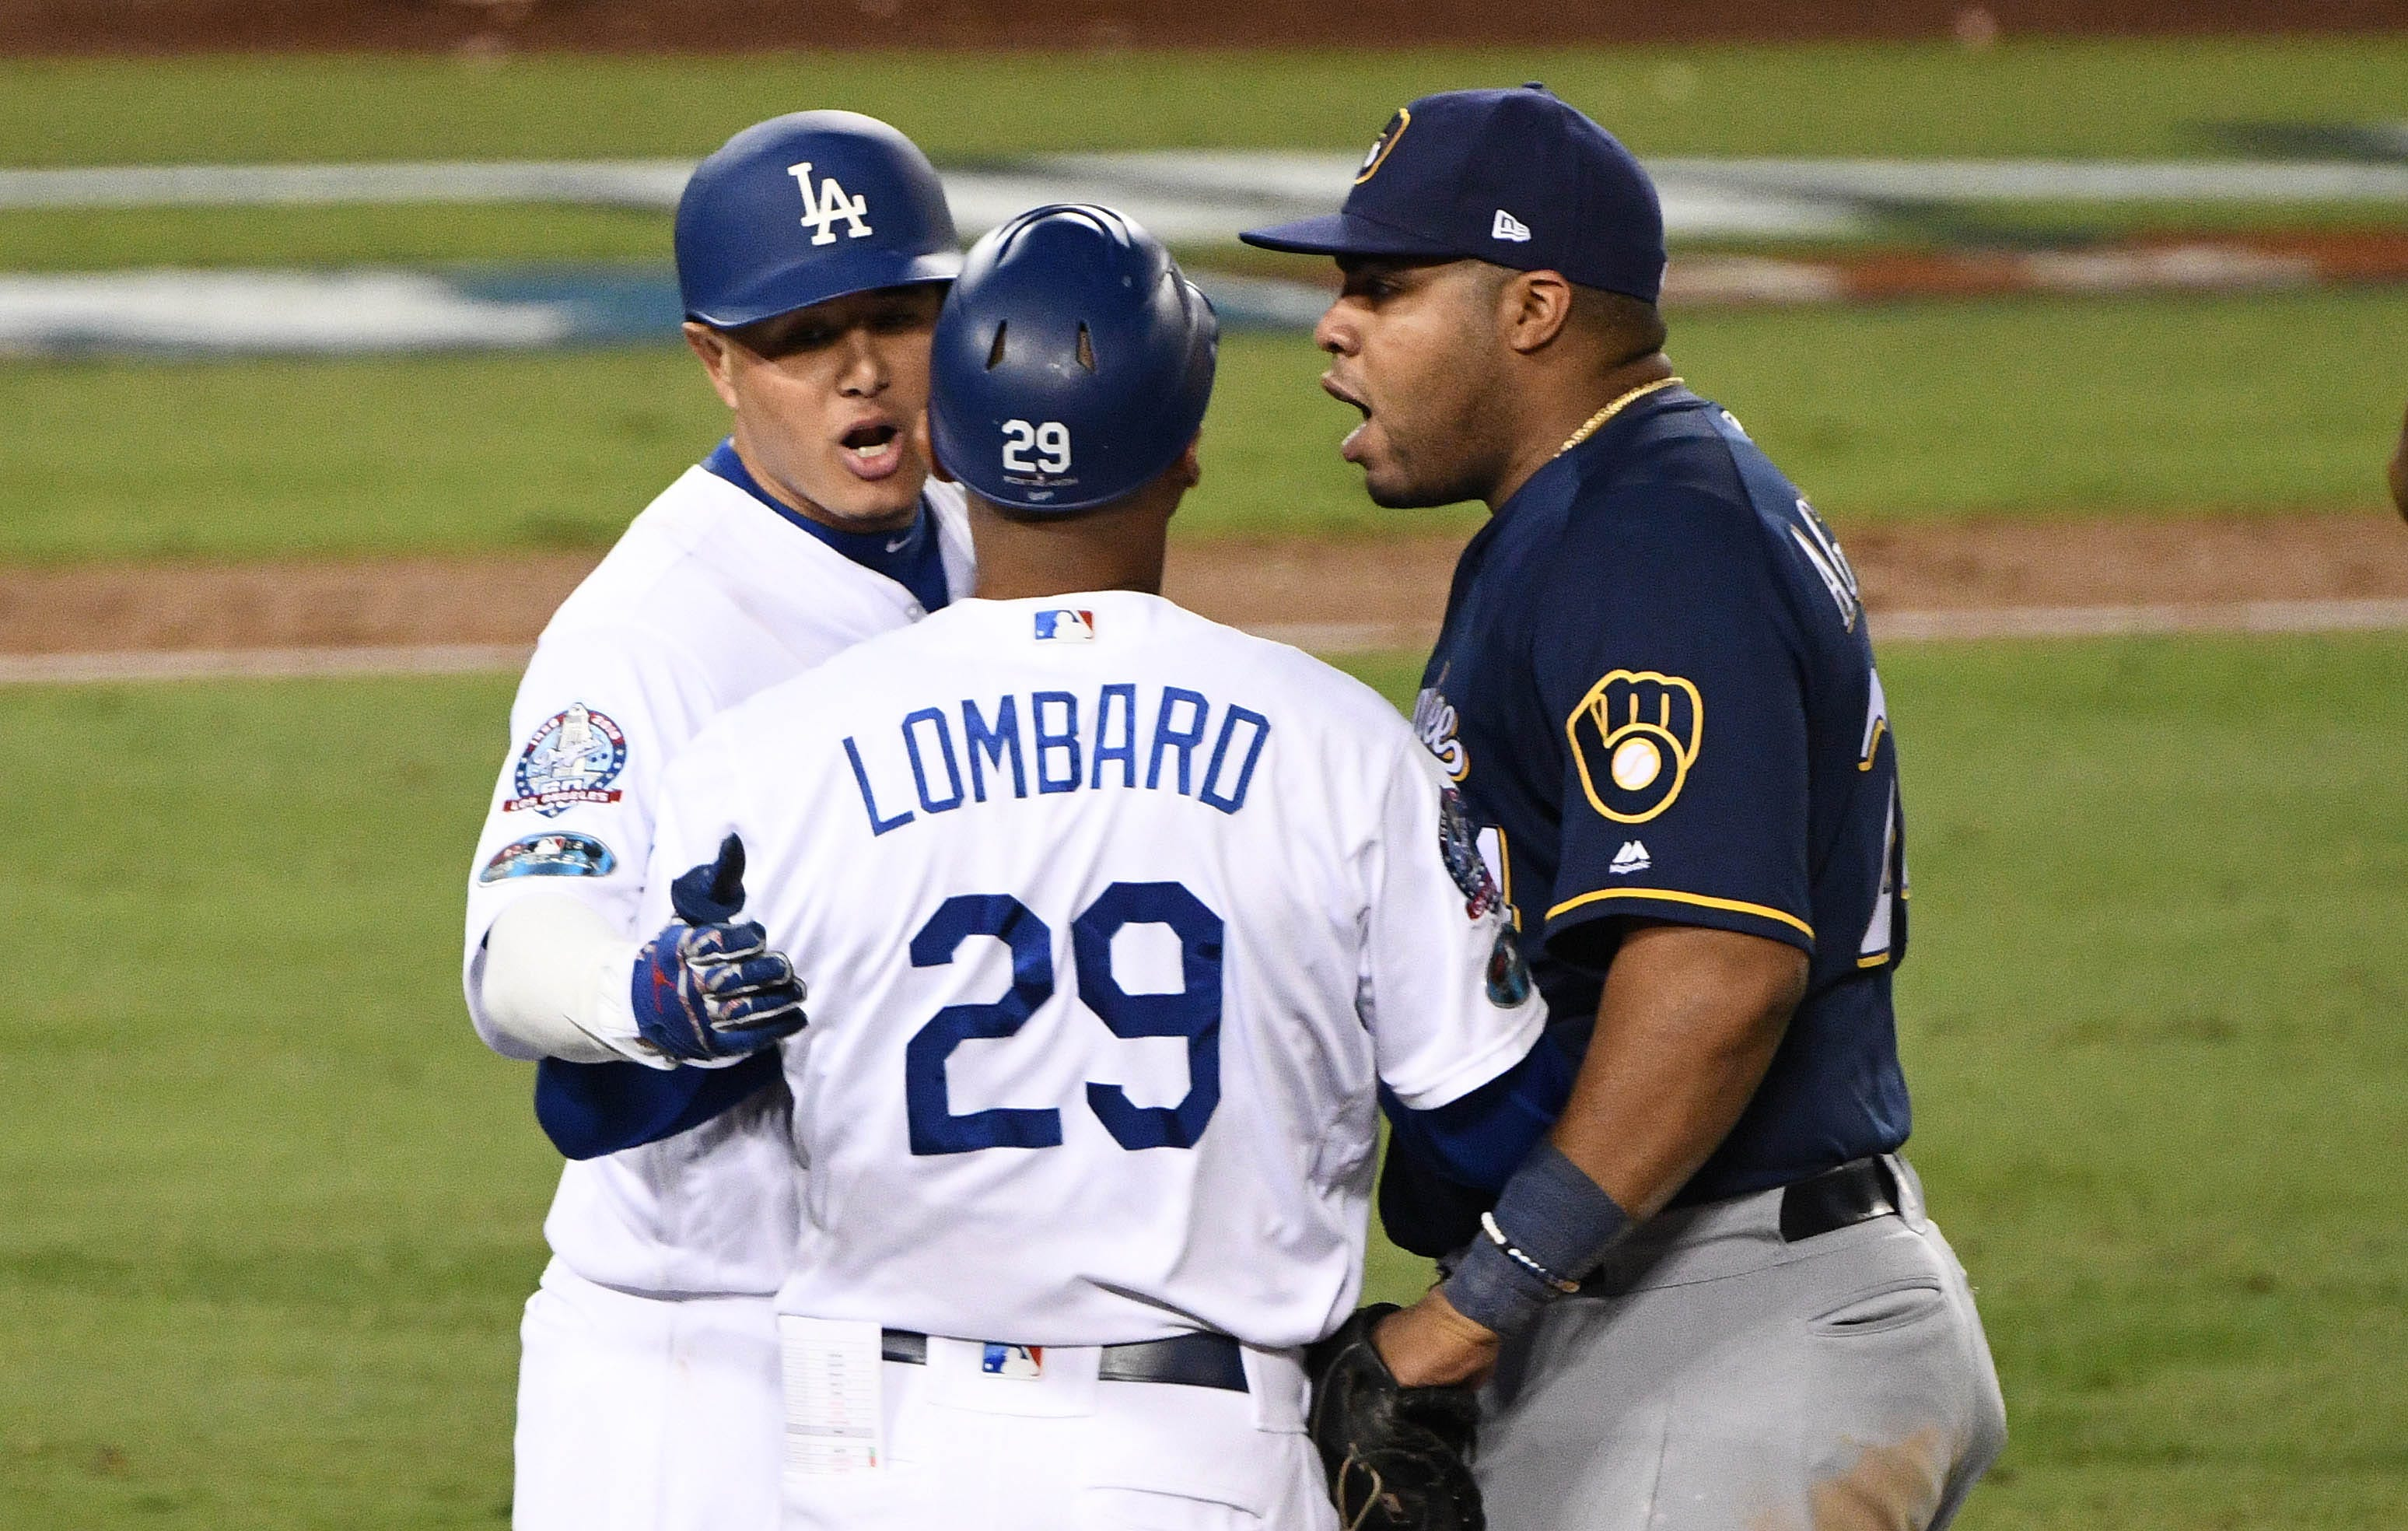 MLB fines Manny Machado $10,000 for running into Brewers first baseman